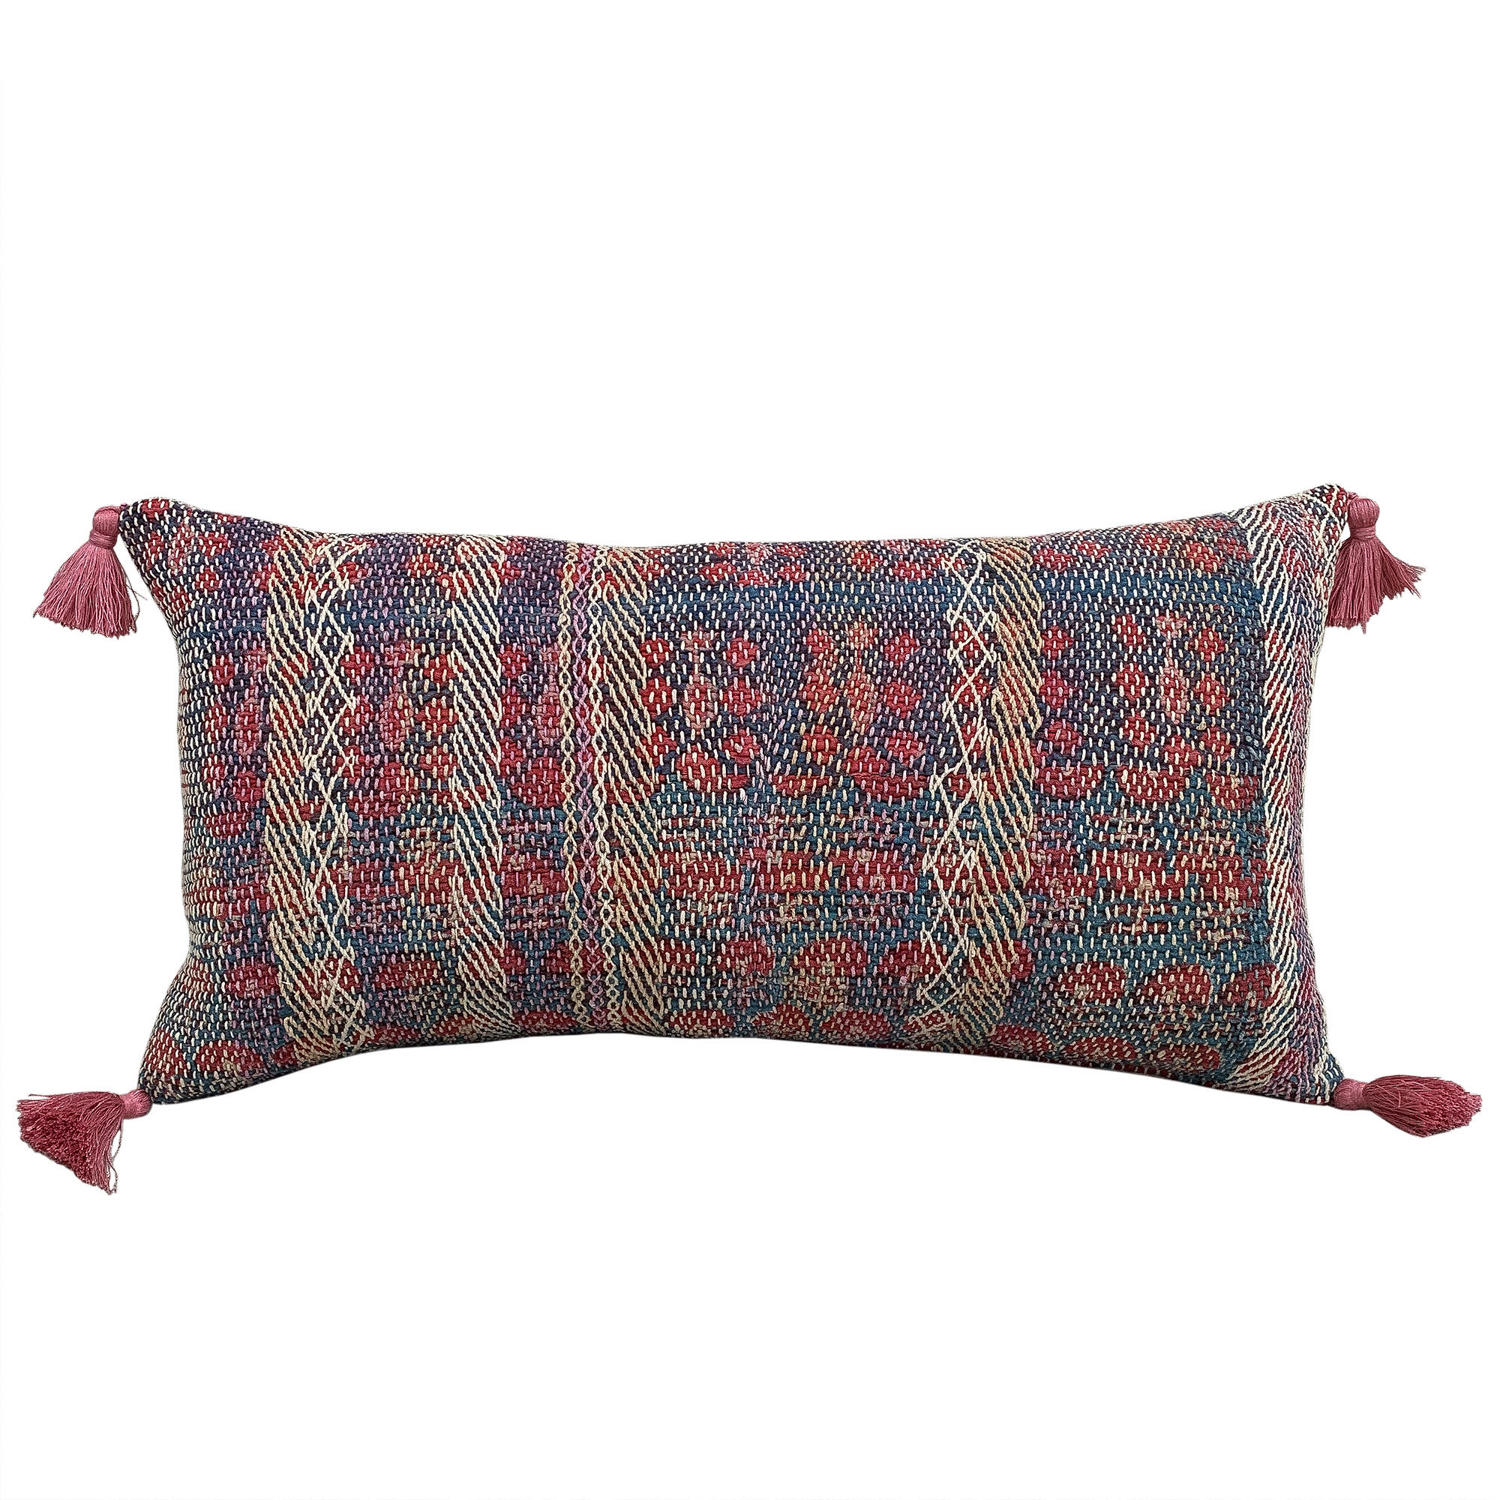 Banjara cushion with pink tassels